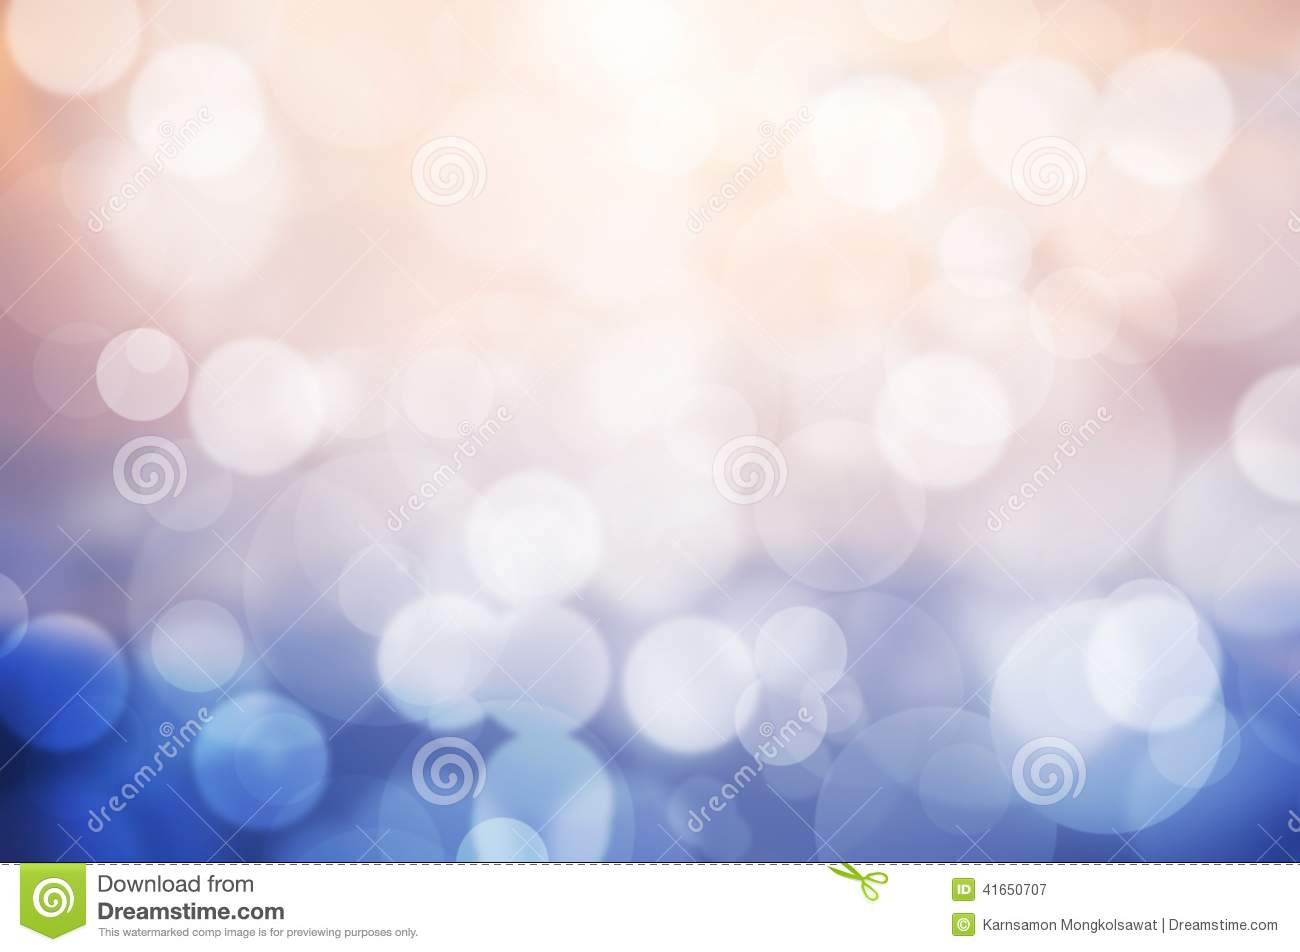 Image of pink and blue bokeh background